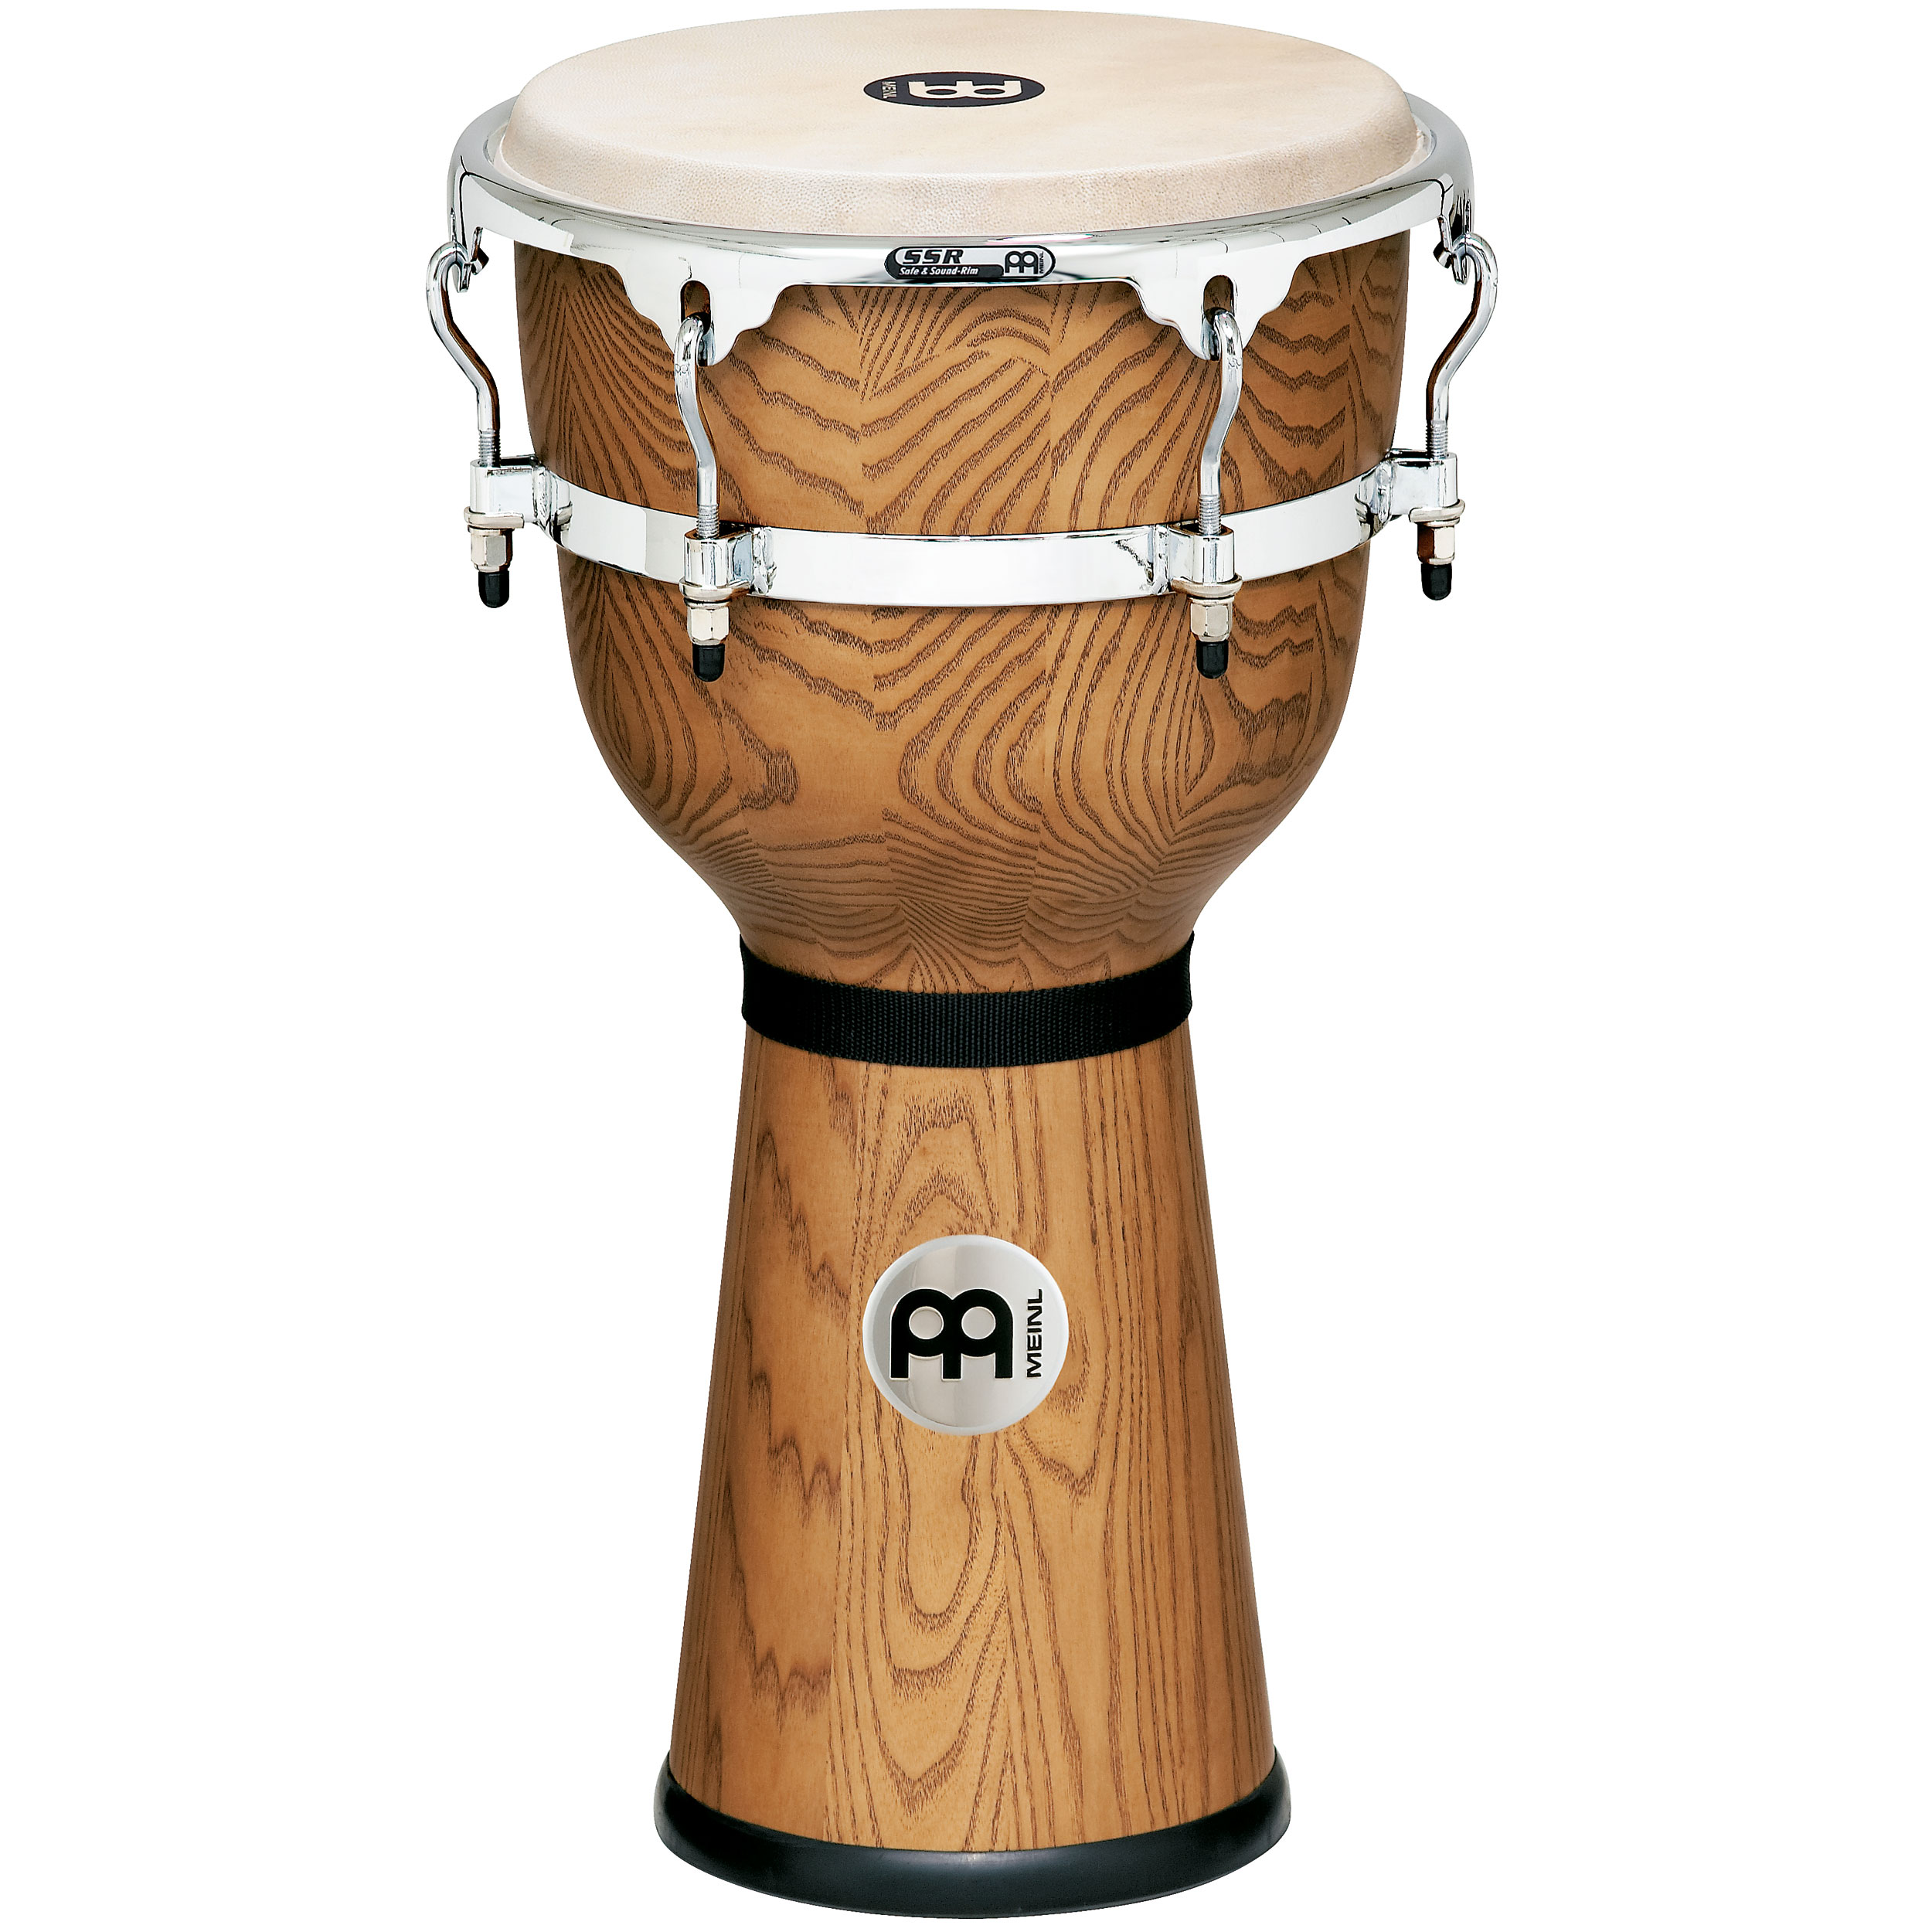 "Meinl 12"" x 24 1/4"" Floatune Wood Djembe in Zebra Finished Ash"